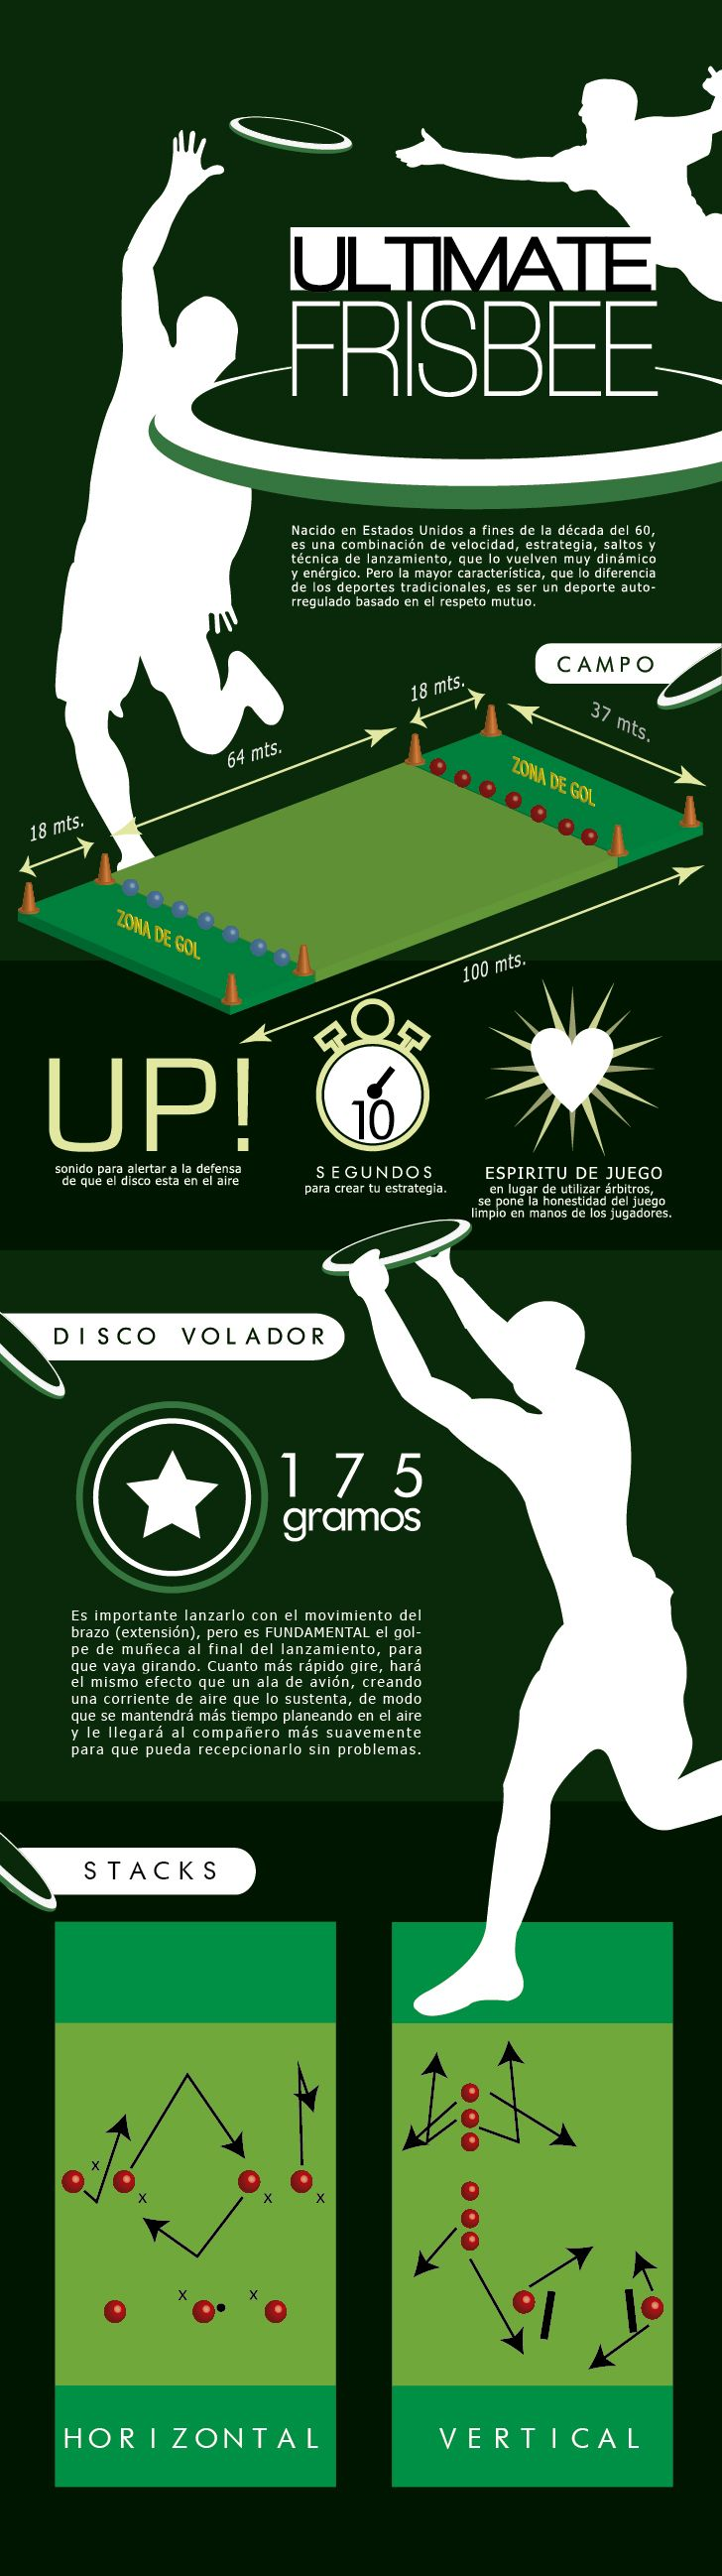 http://alissonquintero.files.wordpress.com/2012/08/infografia-ultimate-frisbee-2-012.jpg